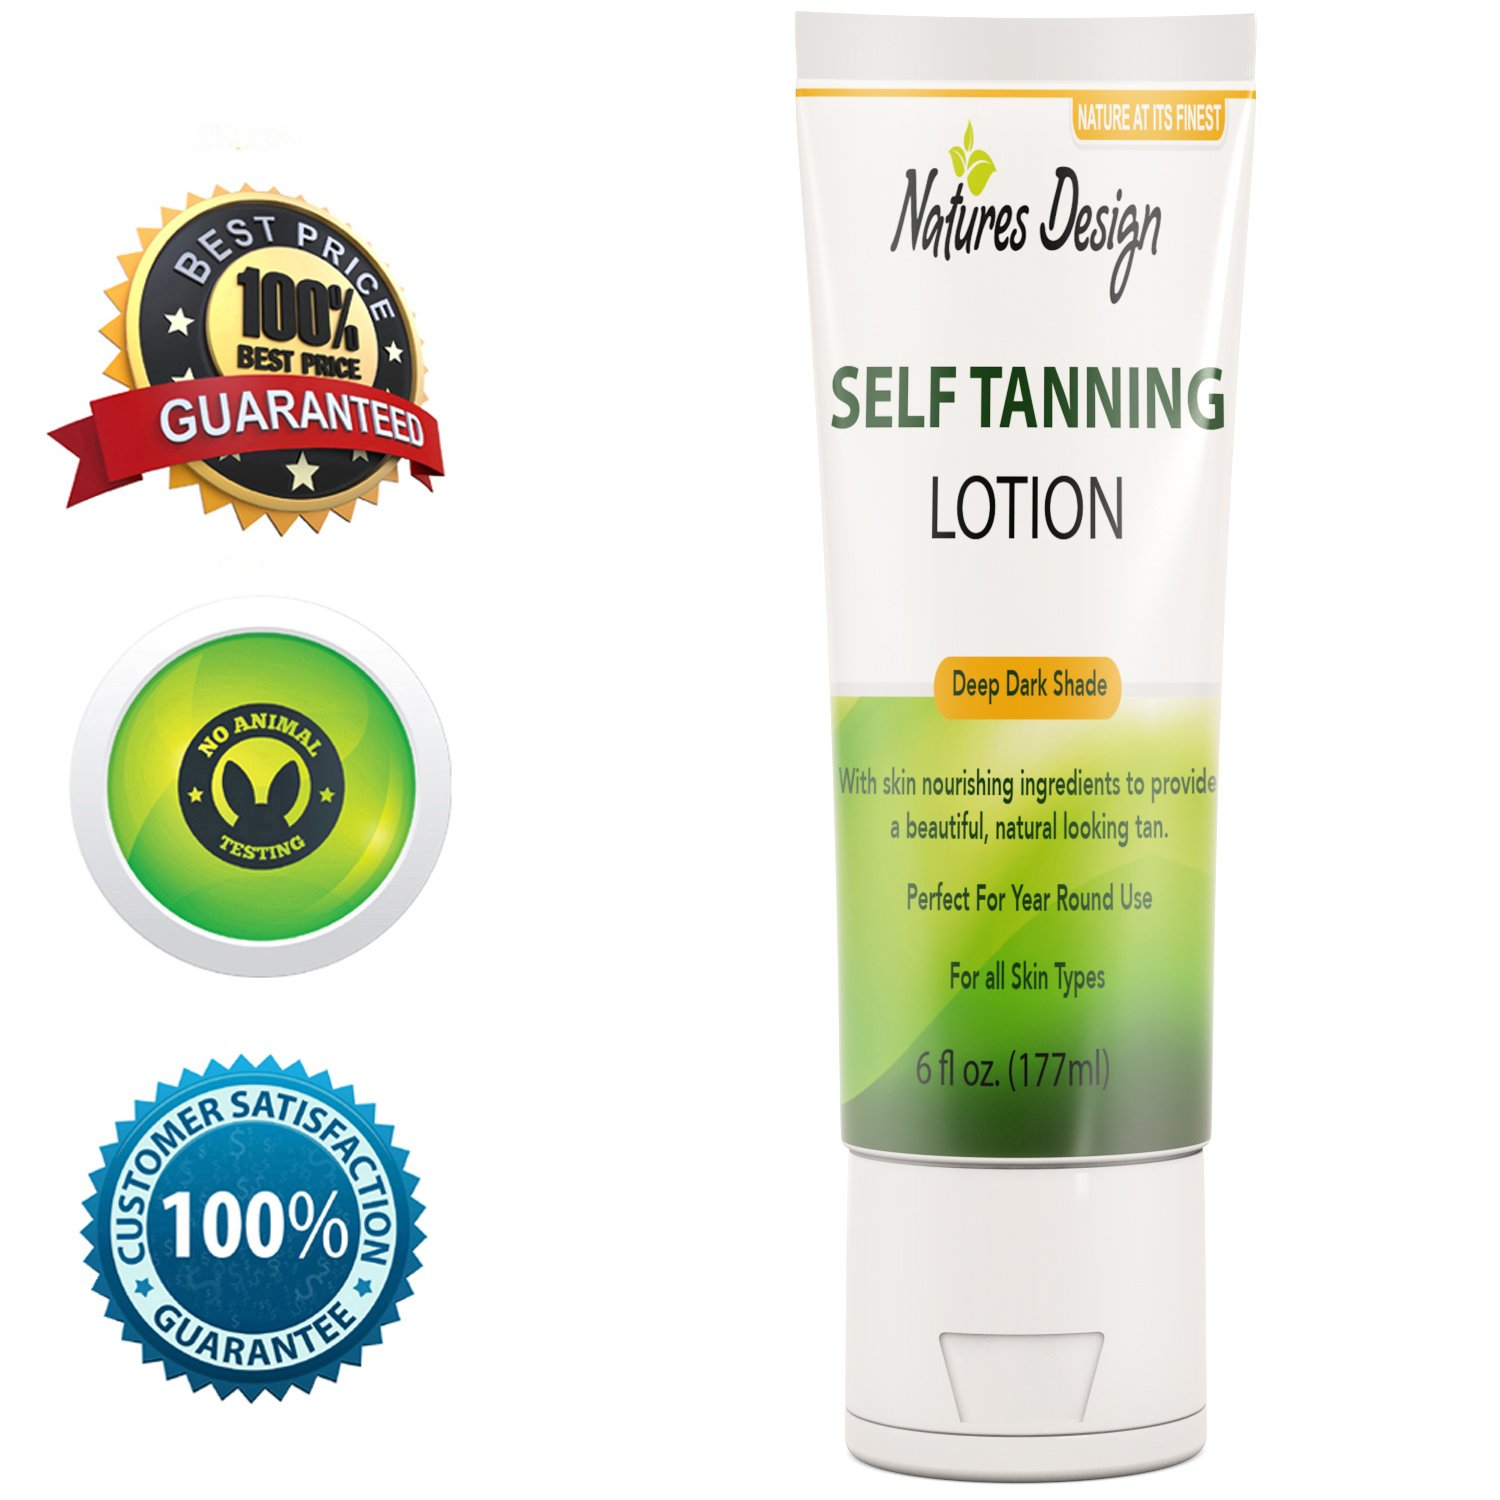 Natural Dark Outdoor Self-Tanning Lotion For Body Face And Legs-Rich In DHA Other Fatty Acids Antioxidants & Coconut Oil- Easy To Apply - Streak Reducing Self-Tanner - UV Protection-6 Oz. by Natures Design